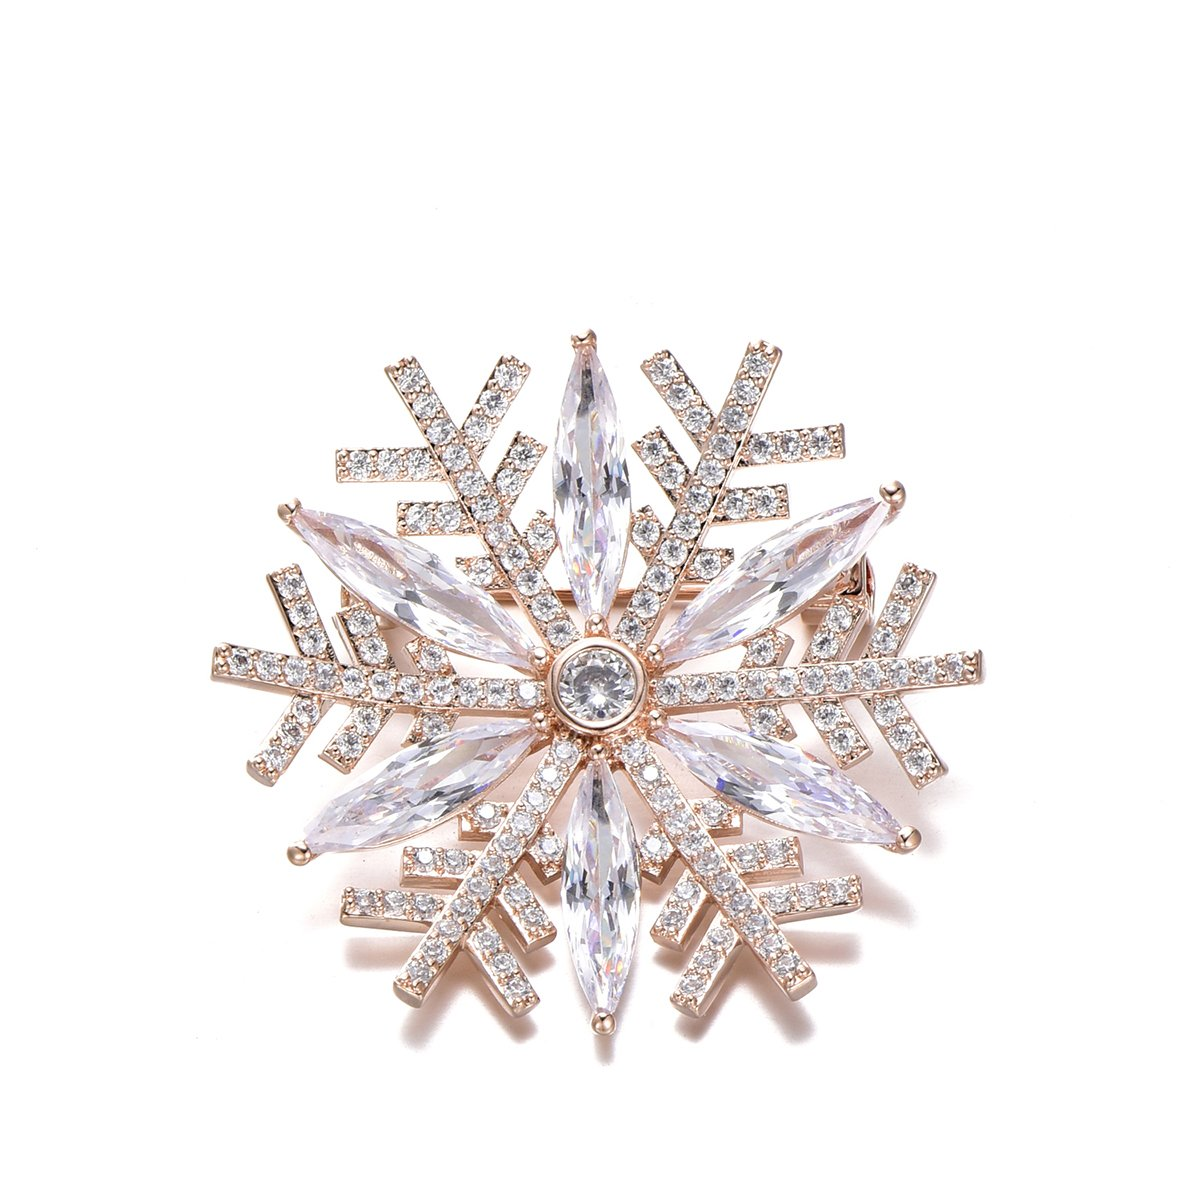 Snowflake Brooch Pins for Women,Dazzling Rhinestone Brooch for Brides Copper Vintage Crystal Brooch Girls CZ Brooch for Wedding,Party (Rose Gold Snowflake)